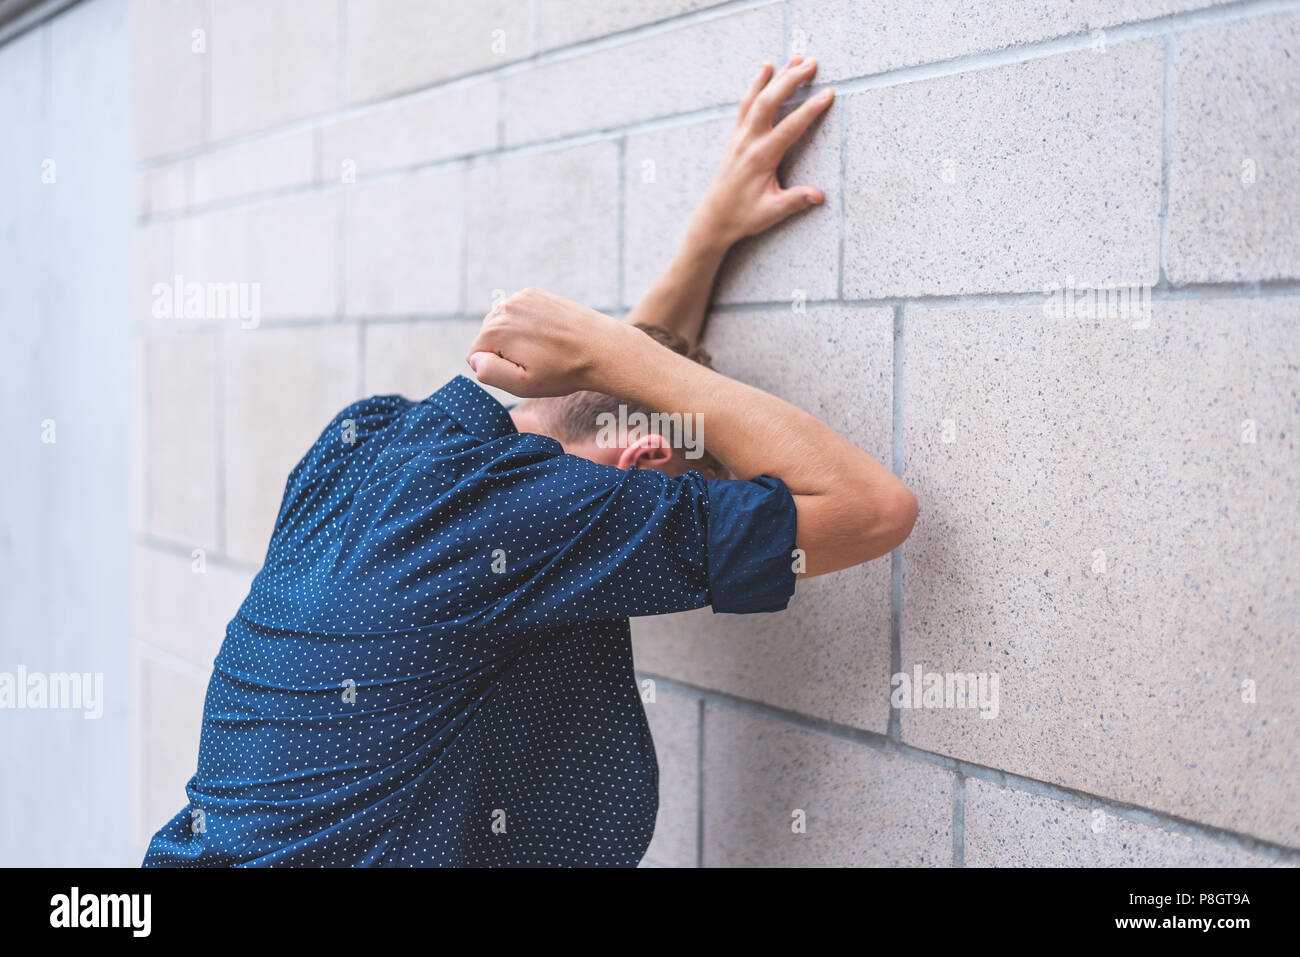 Teen punching brick wall in frustration. - Stock Image